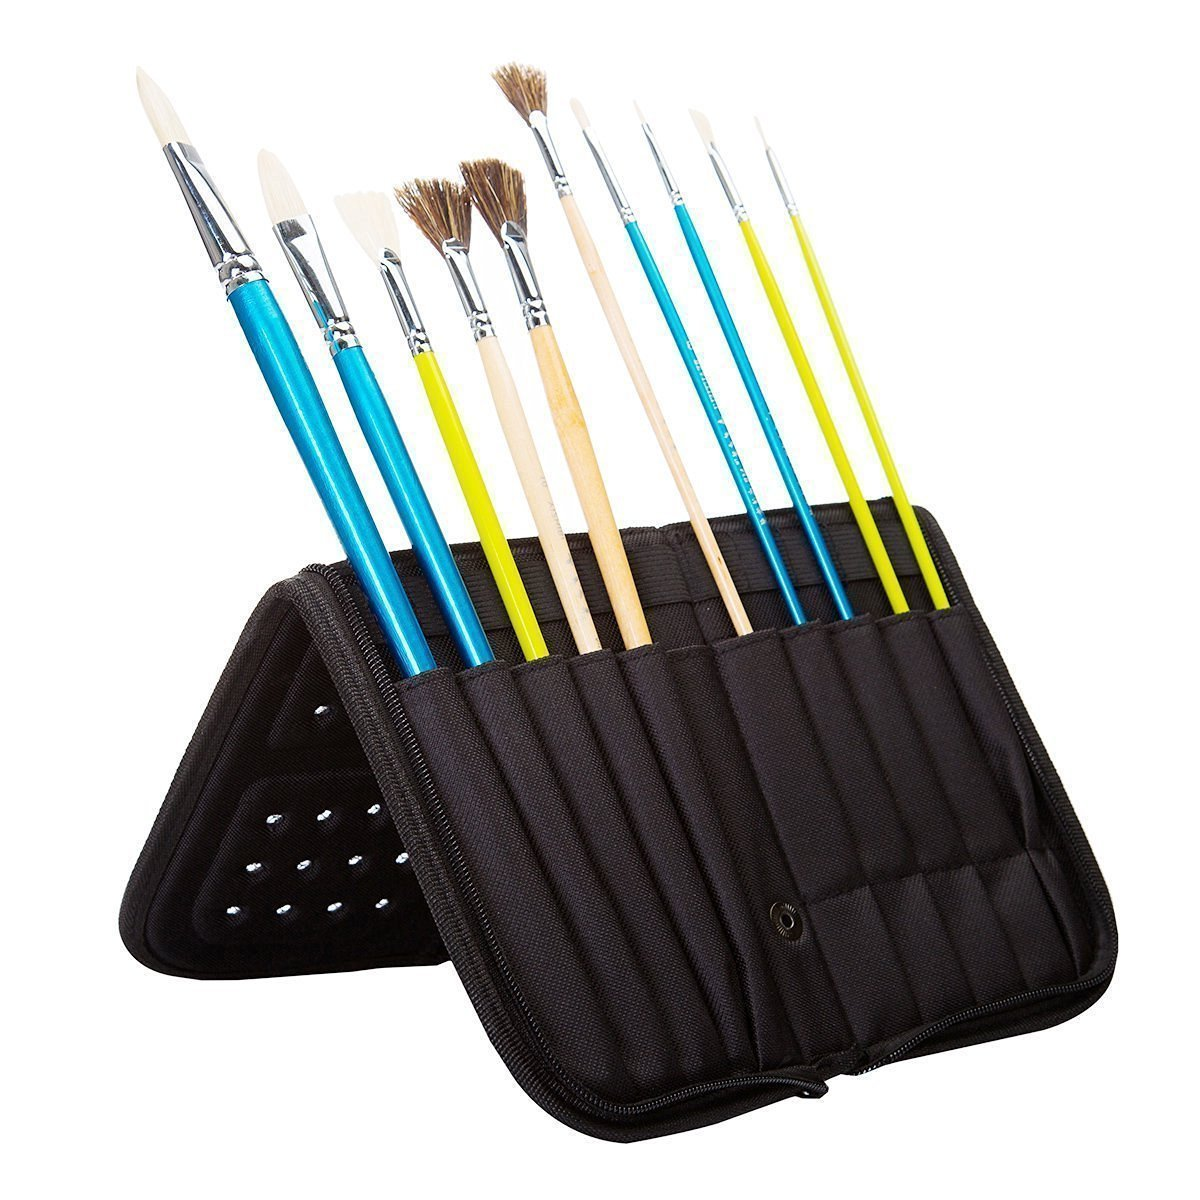 MEEDEN 11 X 10.5 Inch Mesh Paint Brushes Case Zippered Brush Holder, Short Handle, Black 4336938417